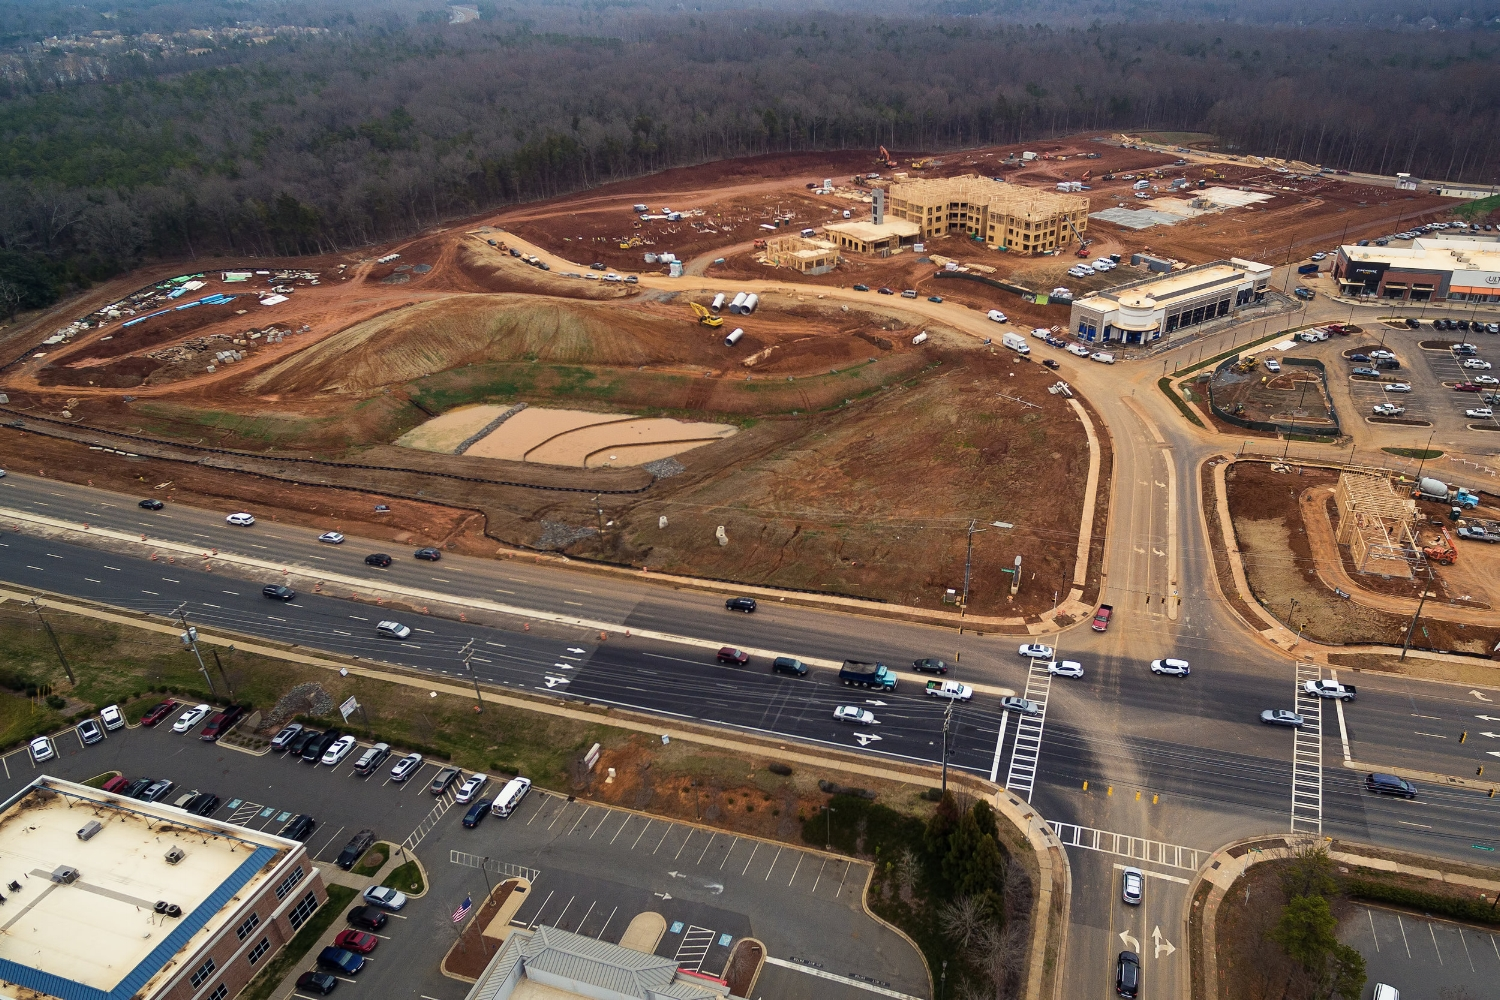 an aerial view of crescent providence farm near the interchange of 485 and providence rd updated as of Jan 16, 2017